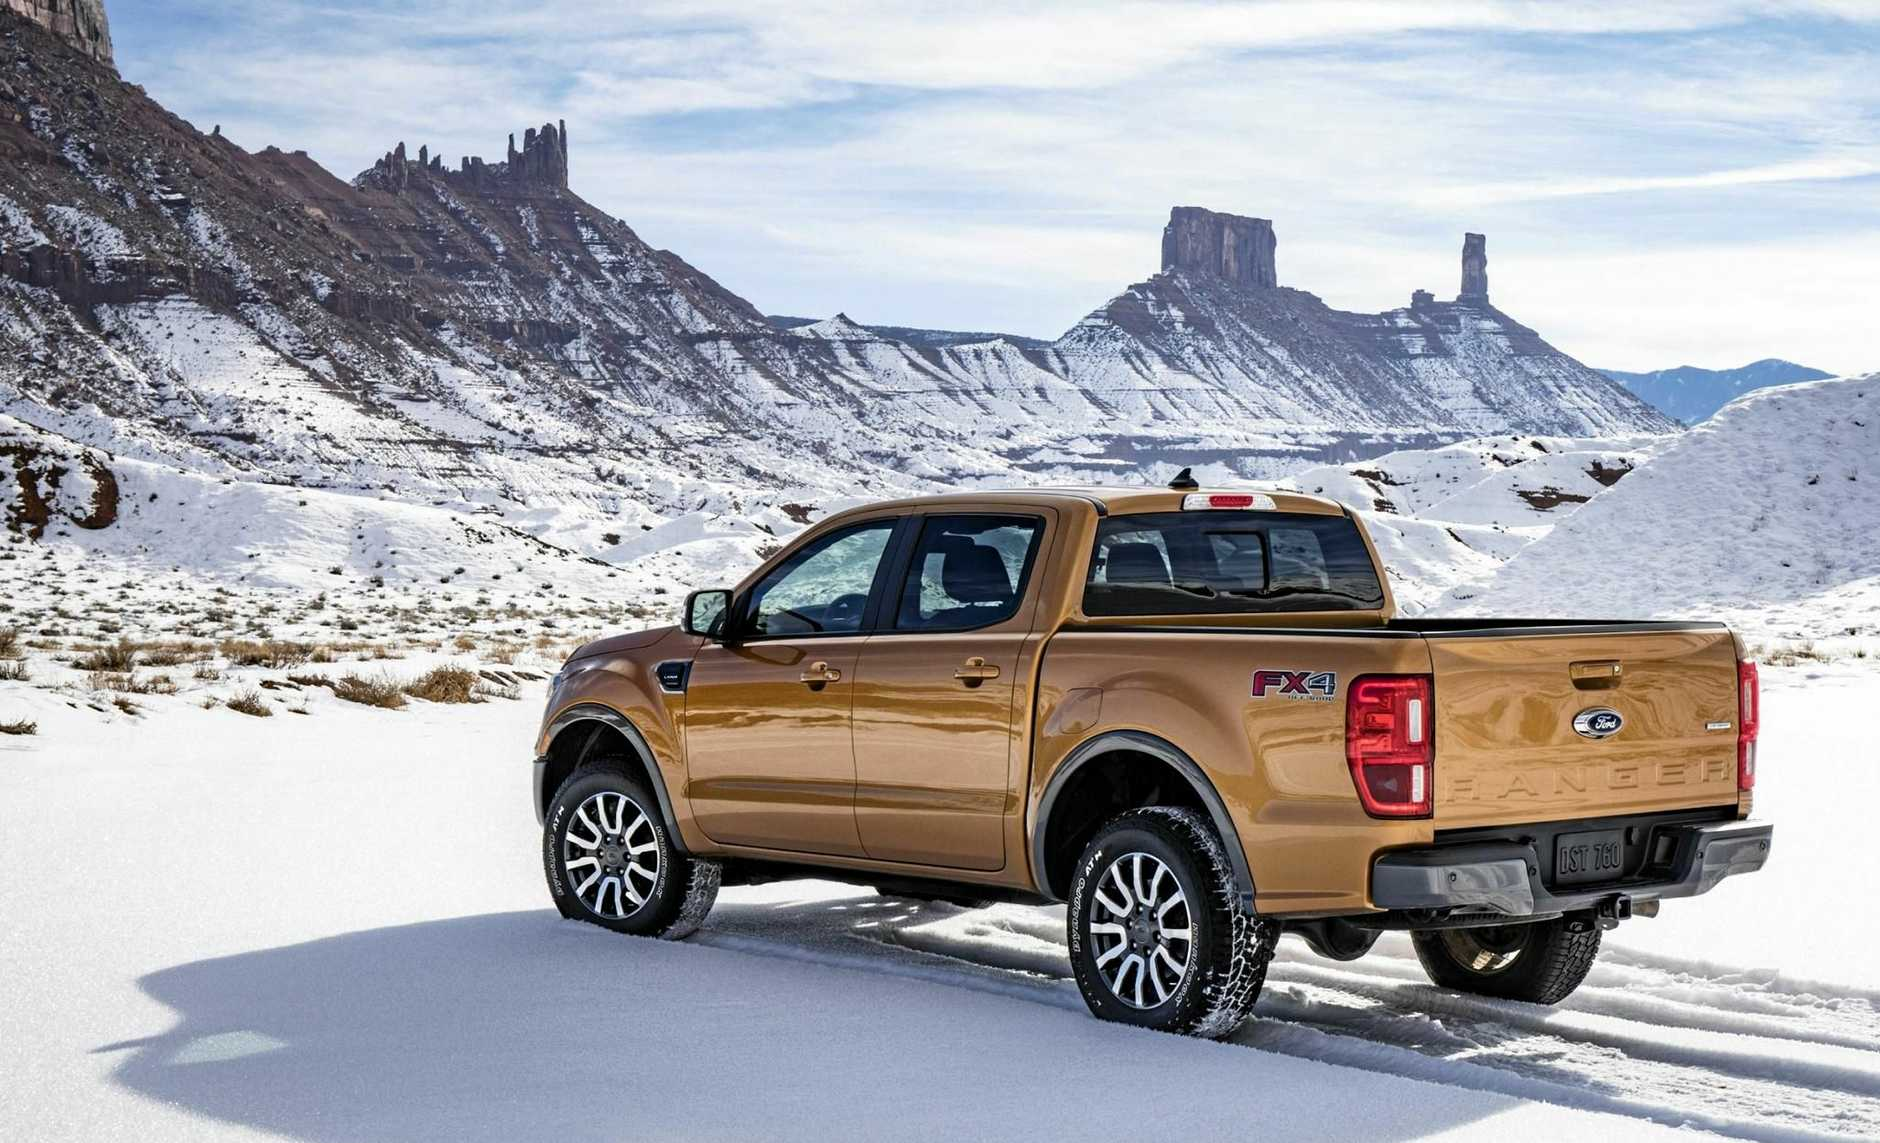 The US version of the 2019 Ford Ranger has just been revealed in Detroit ahead of the North American International Auto Show.